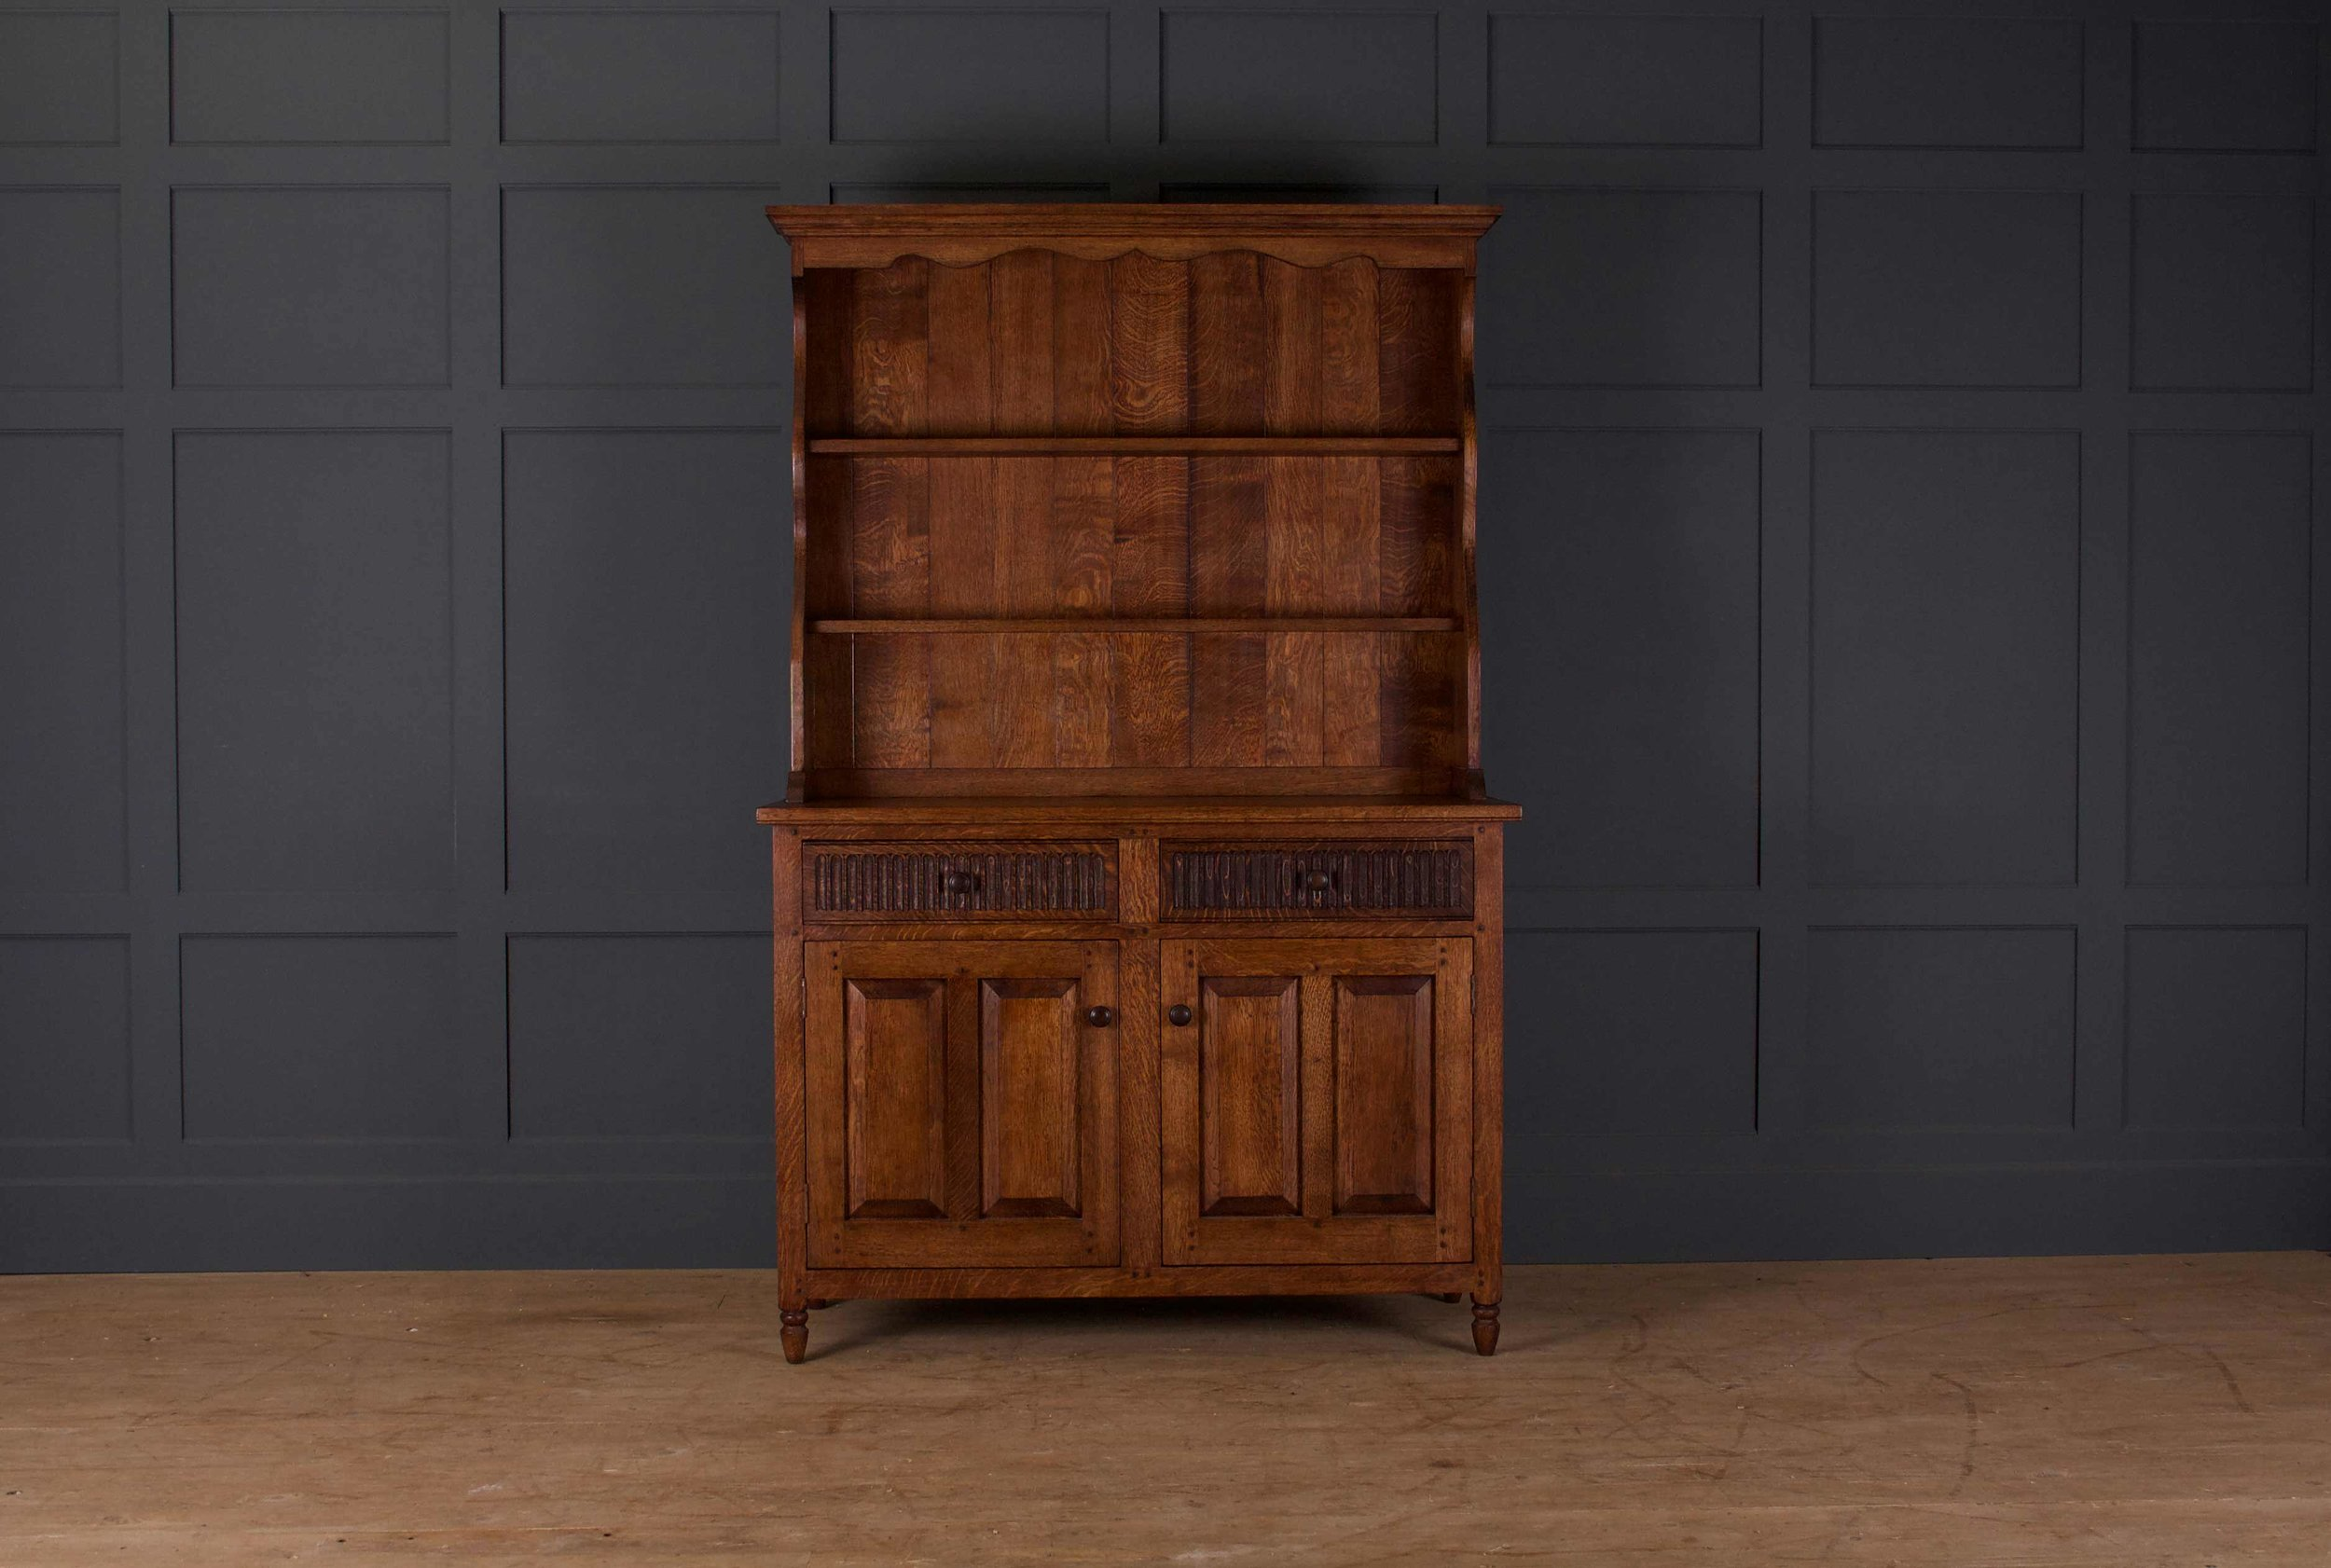 Oak-Carved-Dresser.jpg